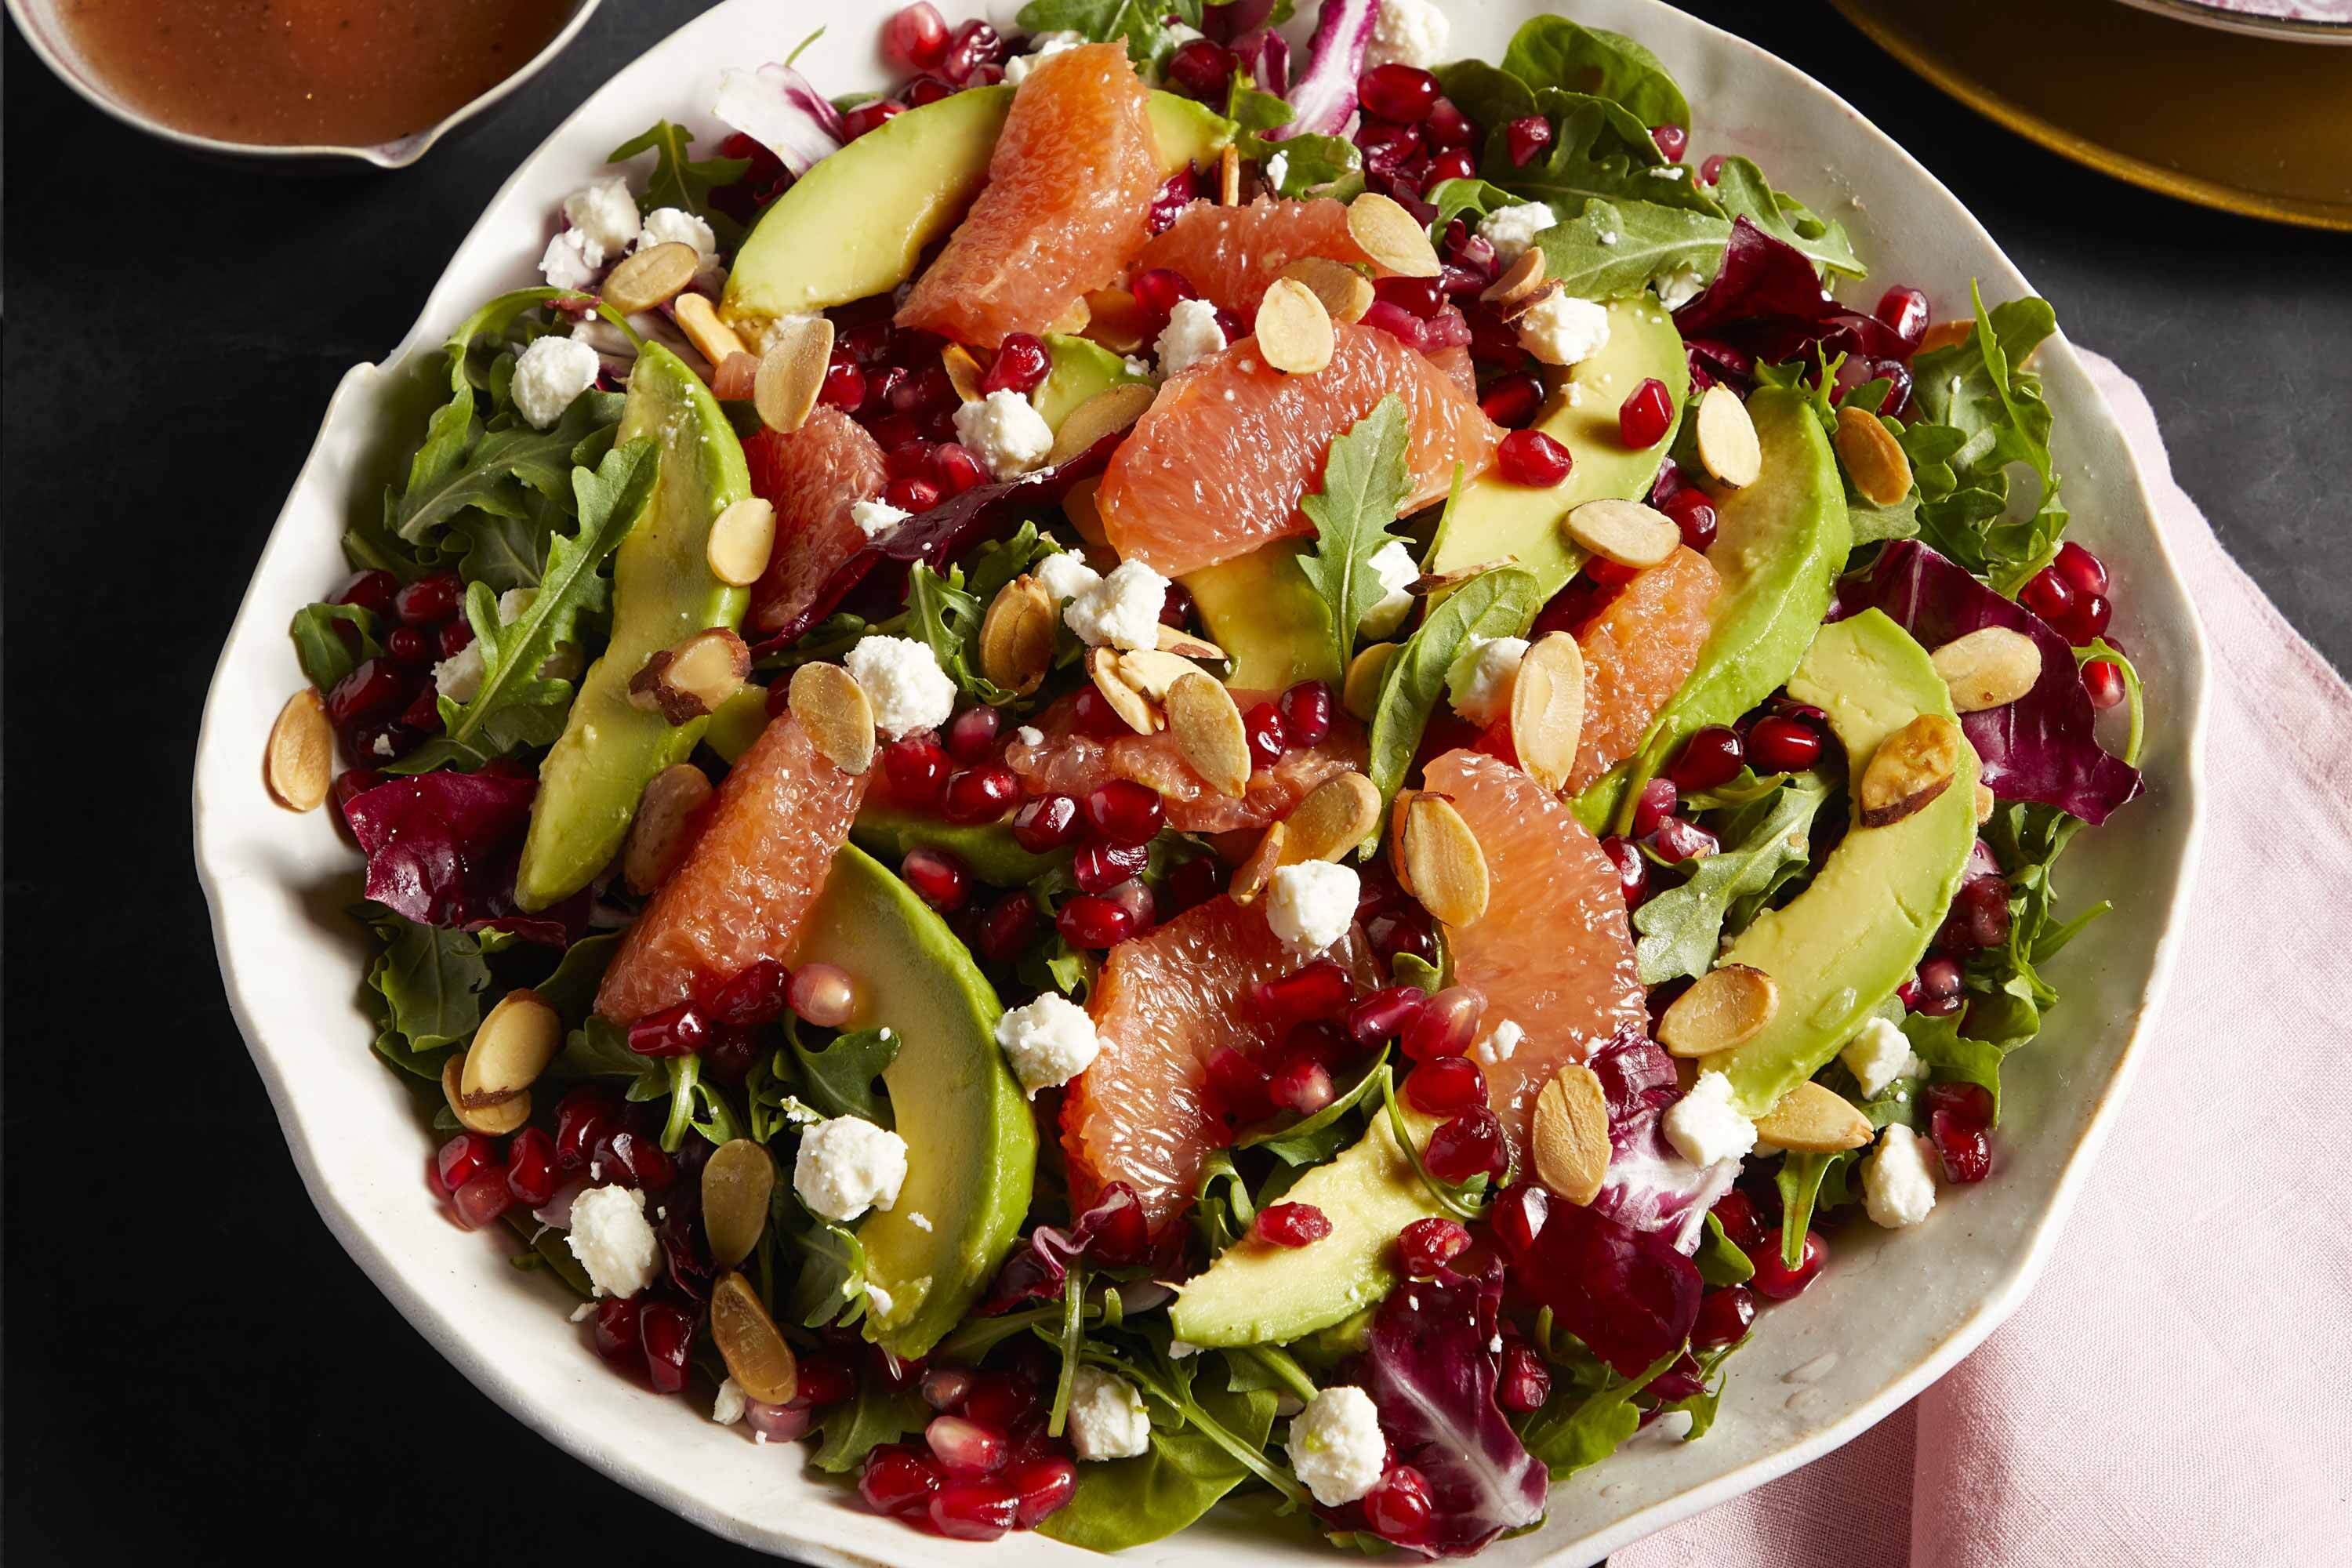 Grapefruit Pomegranate Salad with Avocado